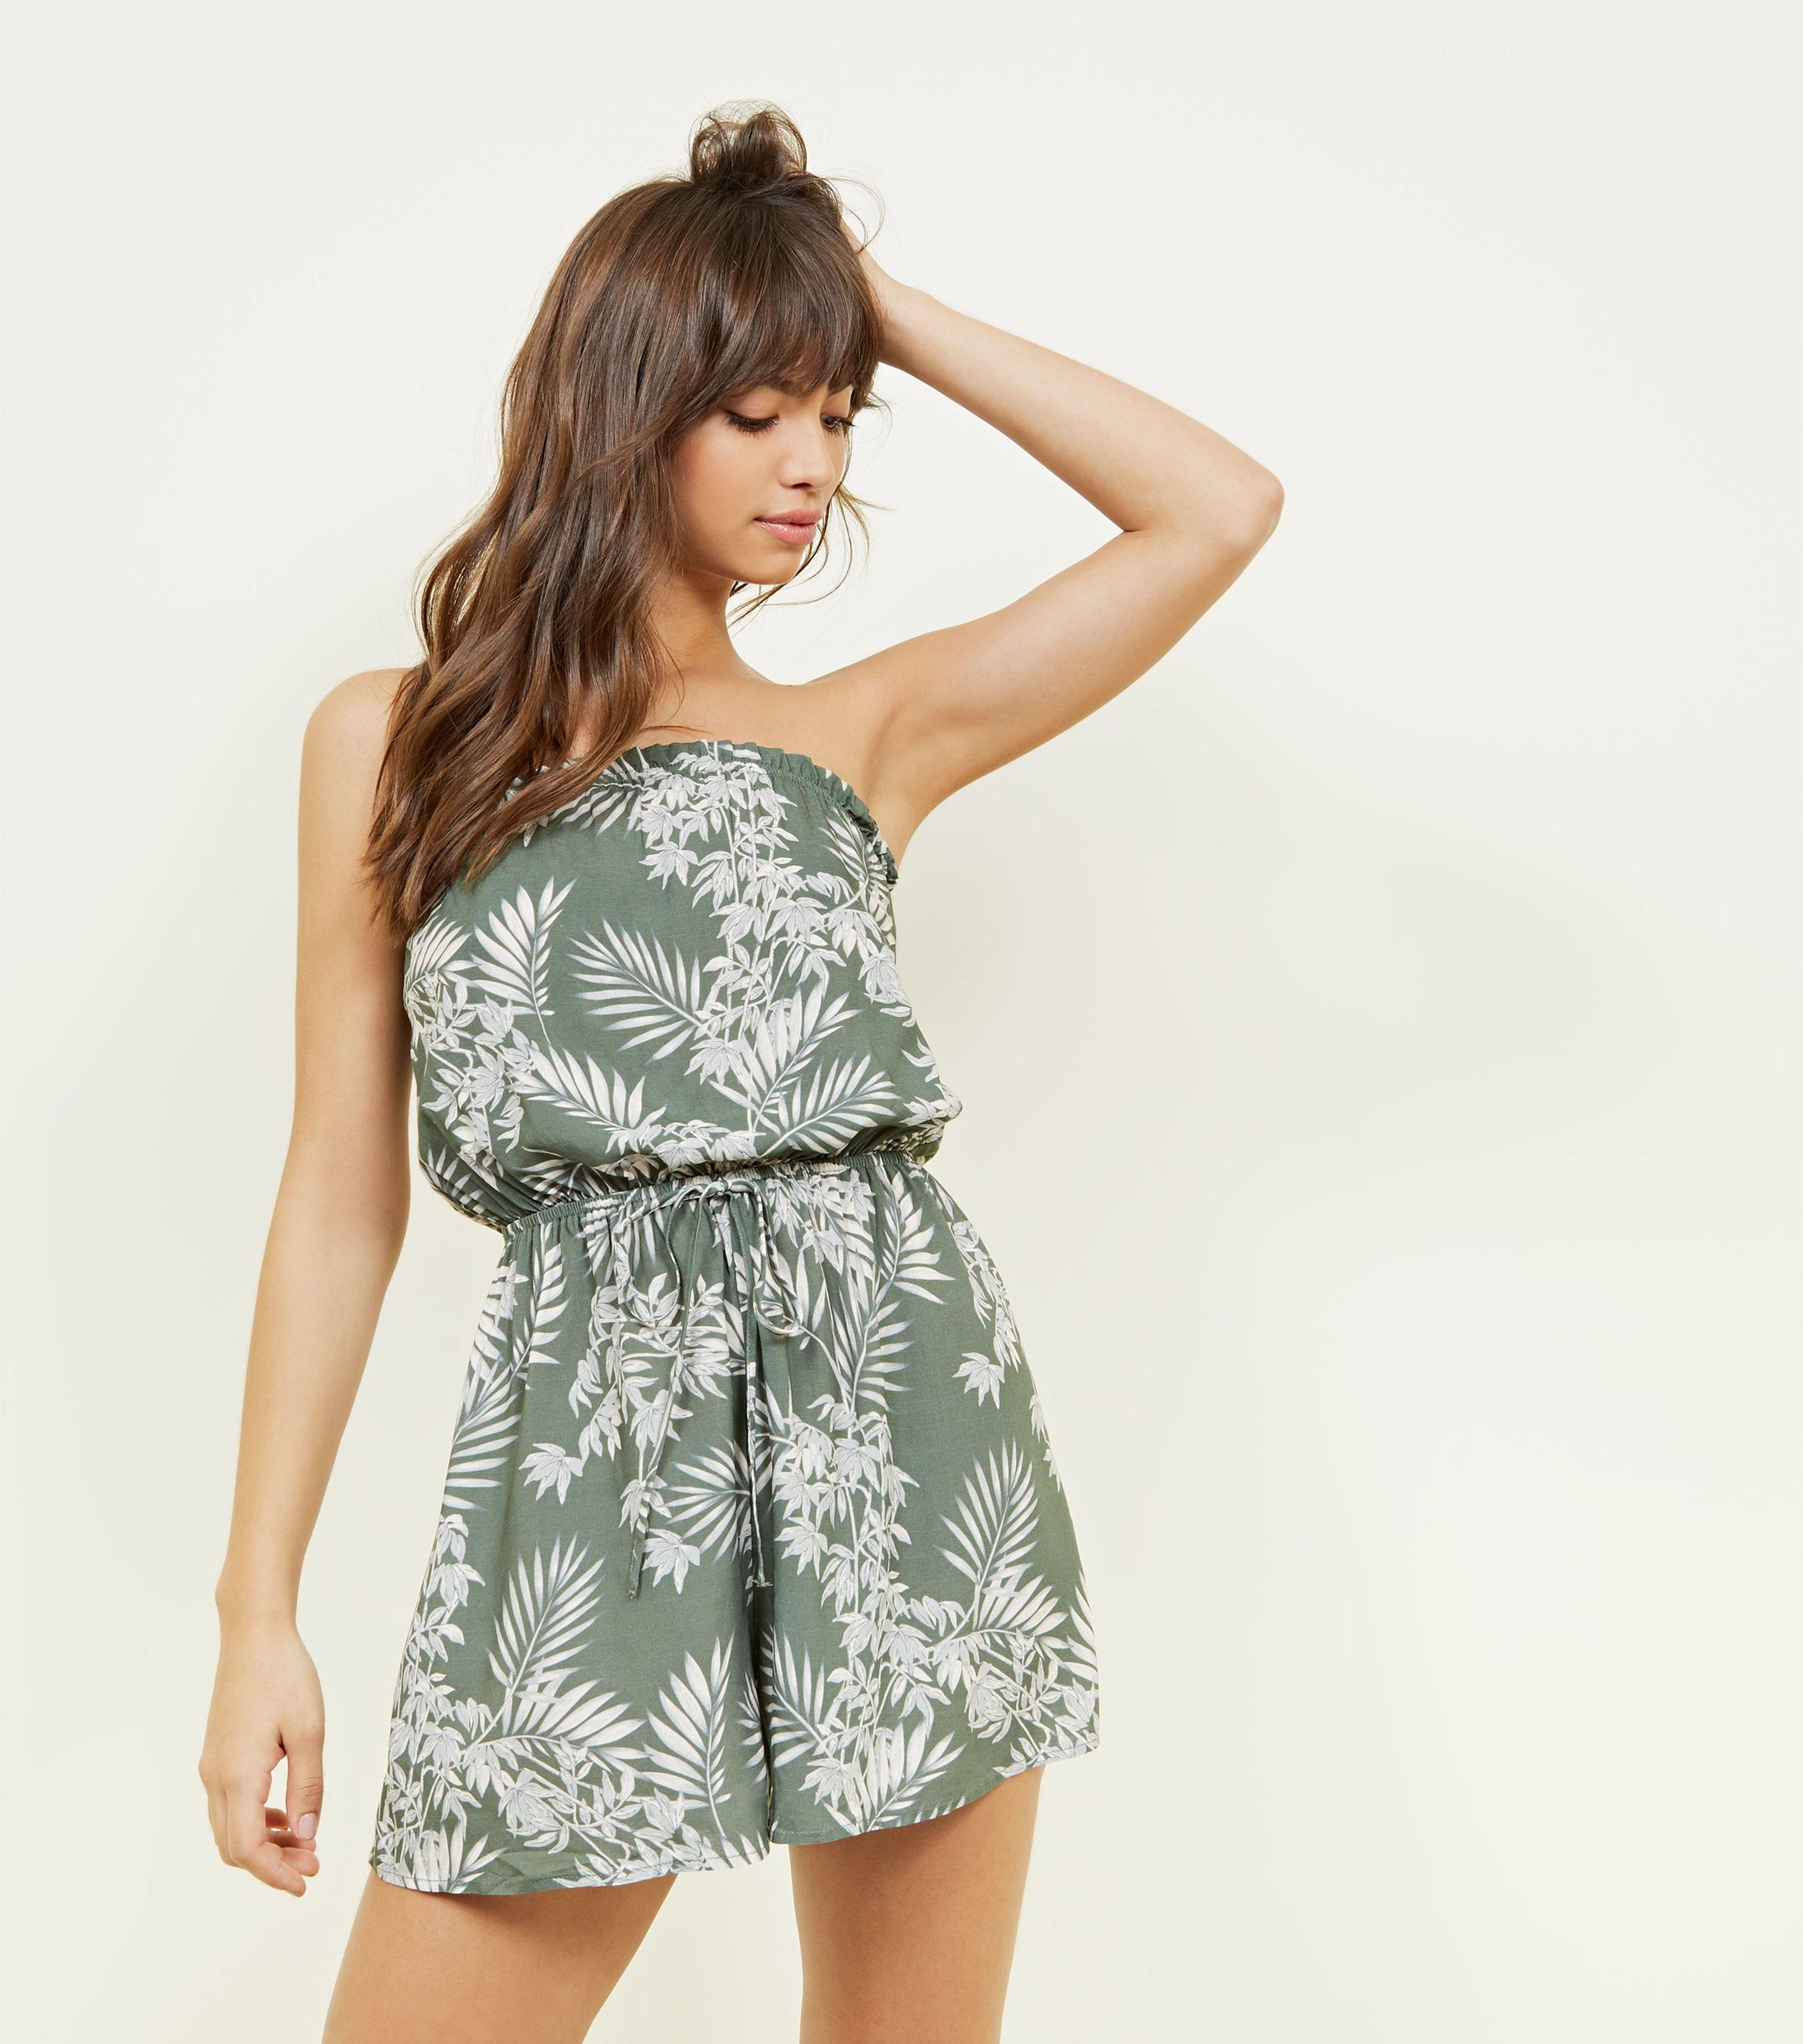 715eb33657c5 New Look Green Tropical Leaf Print Bandeau Playsuit in Green - Lyst